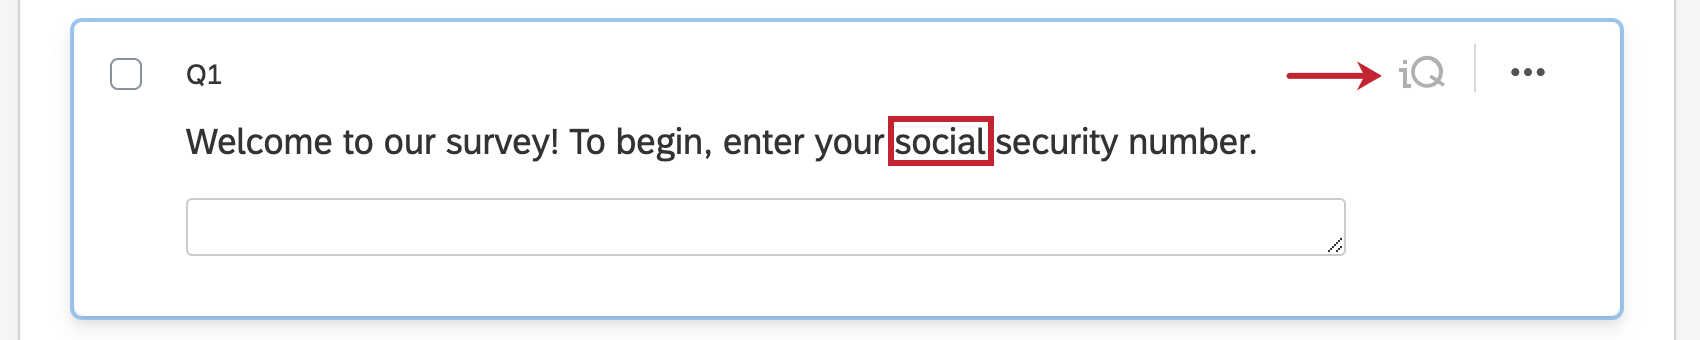 Highlighting the word social in the question and the gray iQ icon